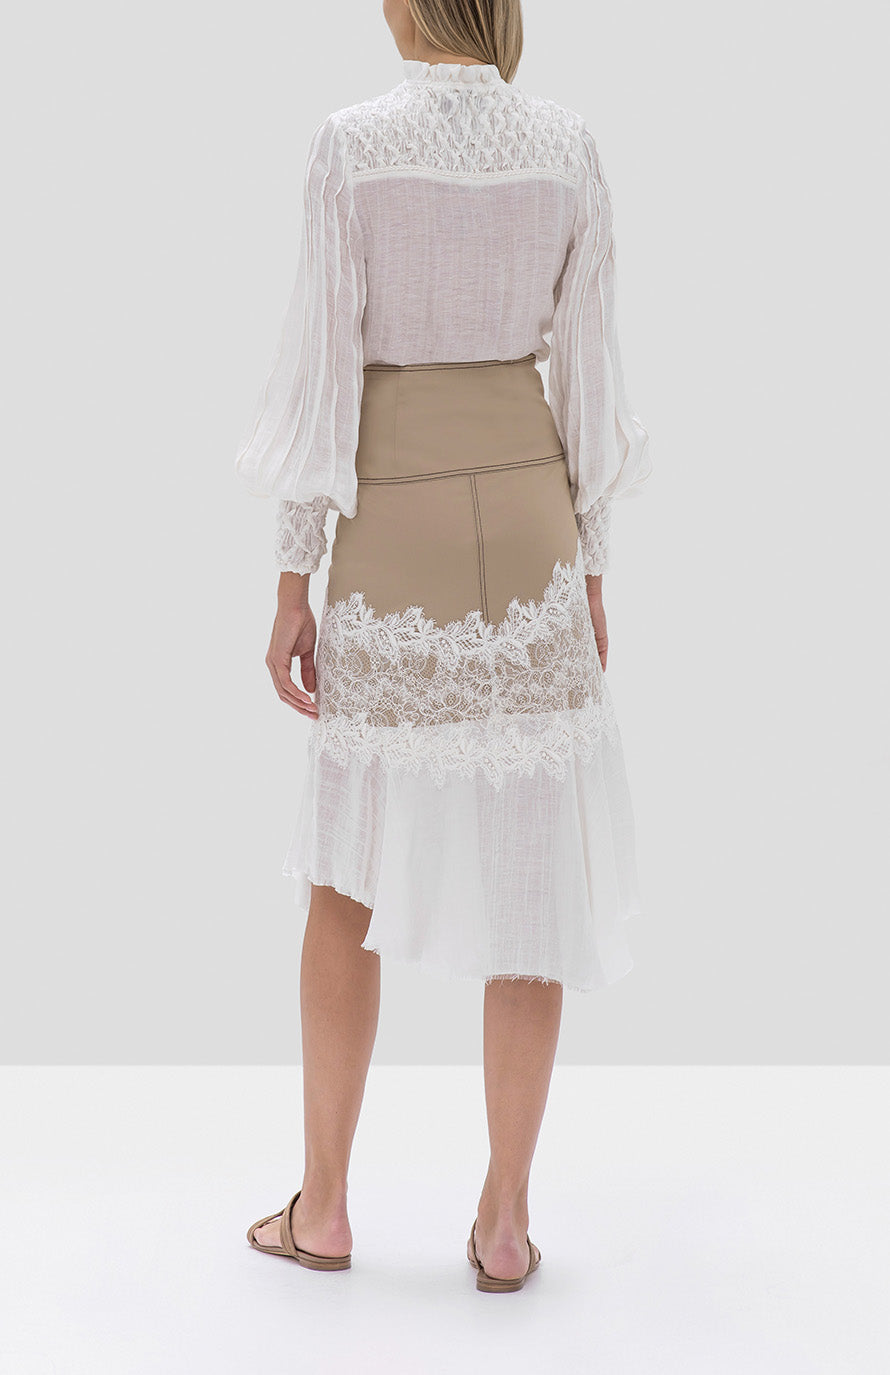 Alexis Minelli Top White and Beretti Skirt in Tan from the Pre Fall 2019 Ready To Wear Collection - Rear View